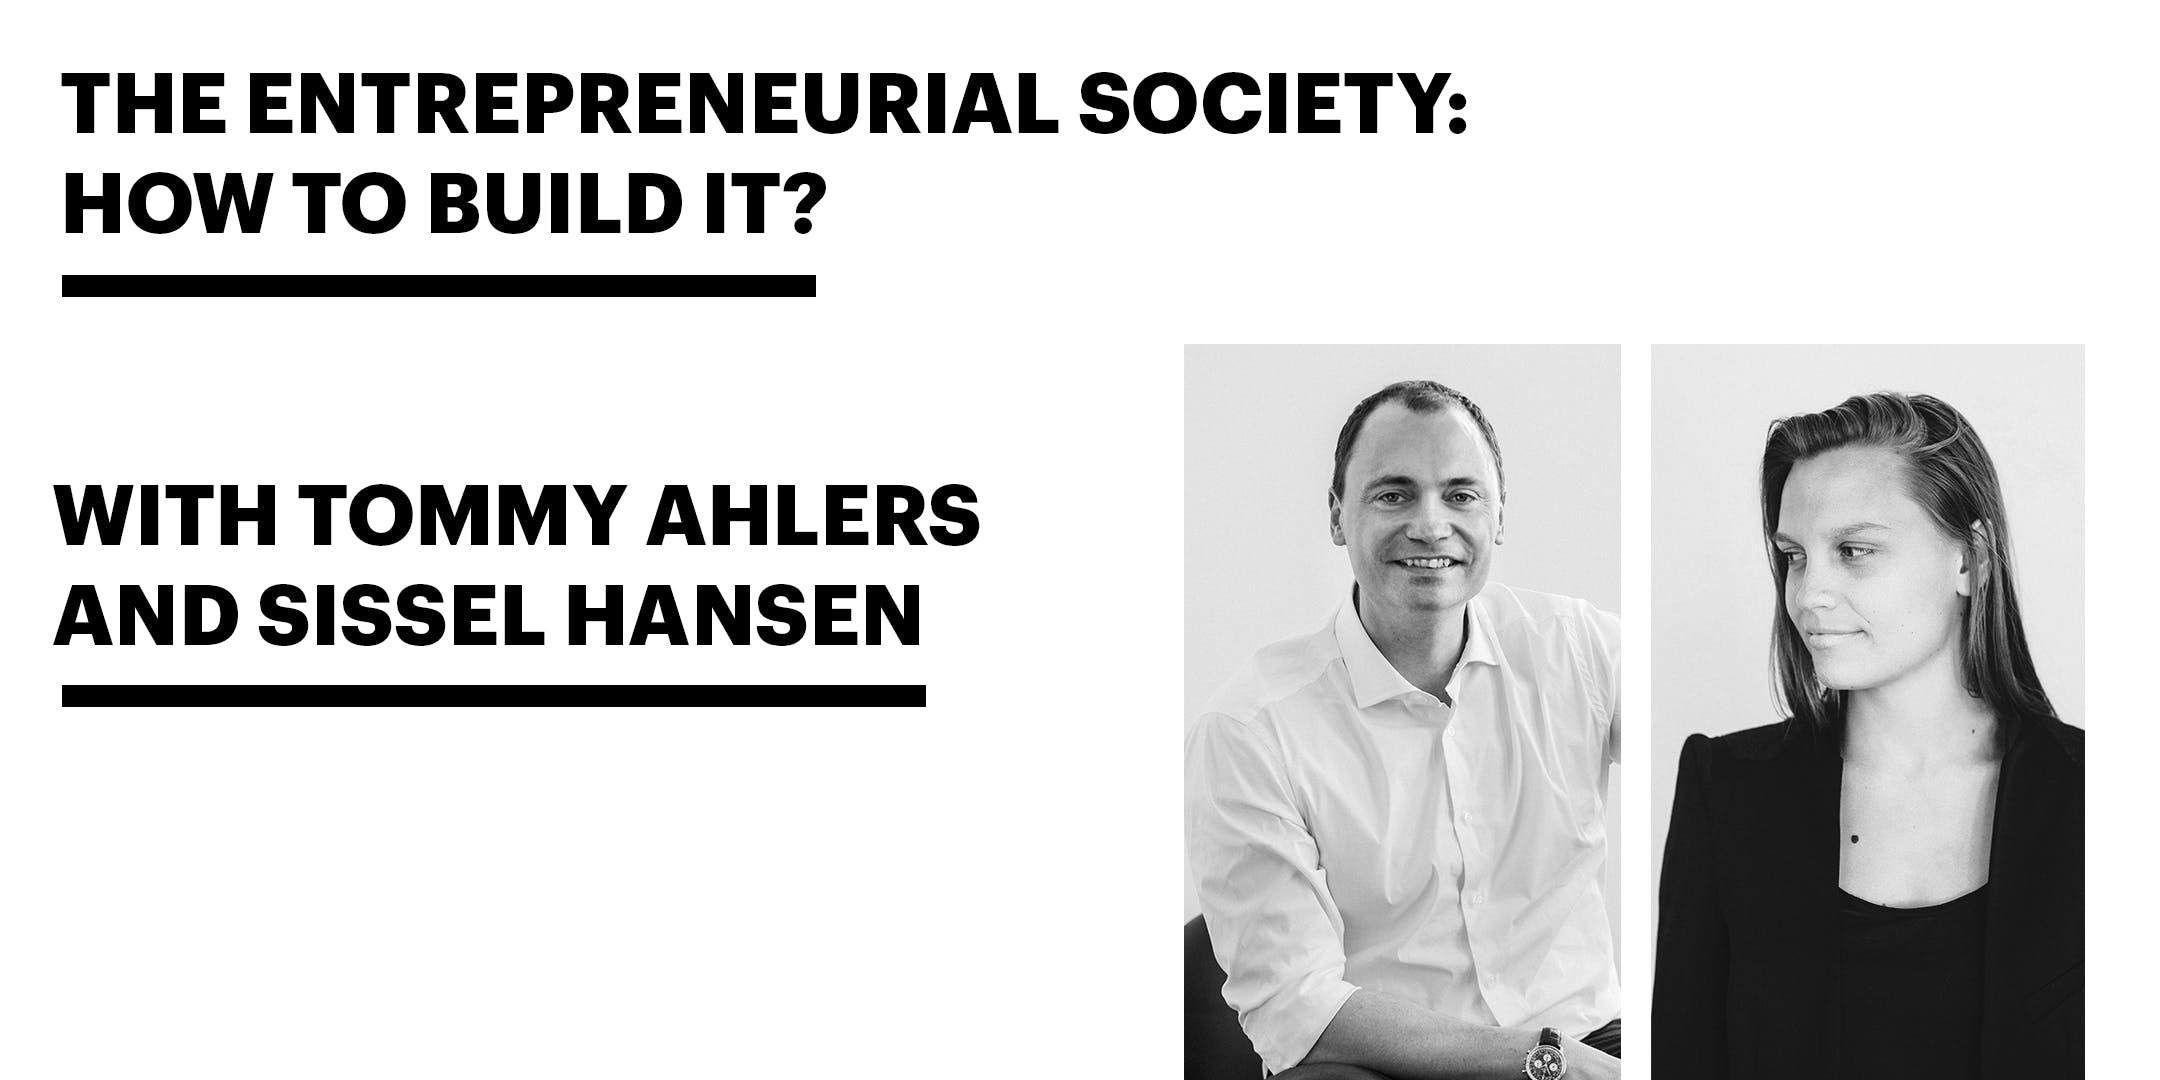 The Entrepreneurial Society: How to build it?